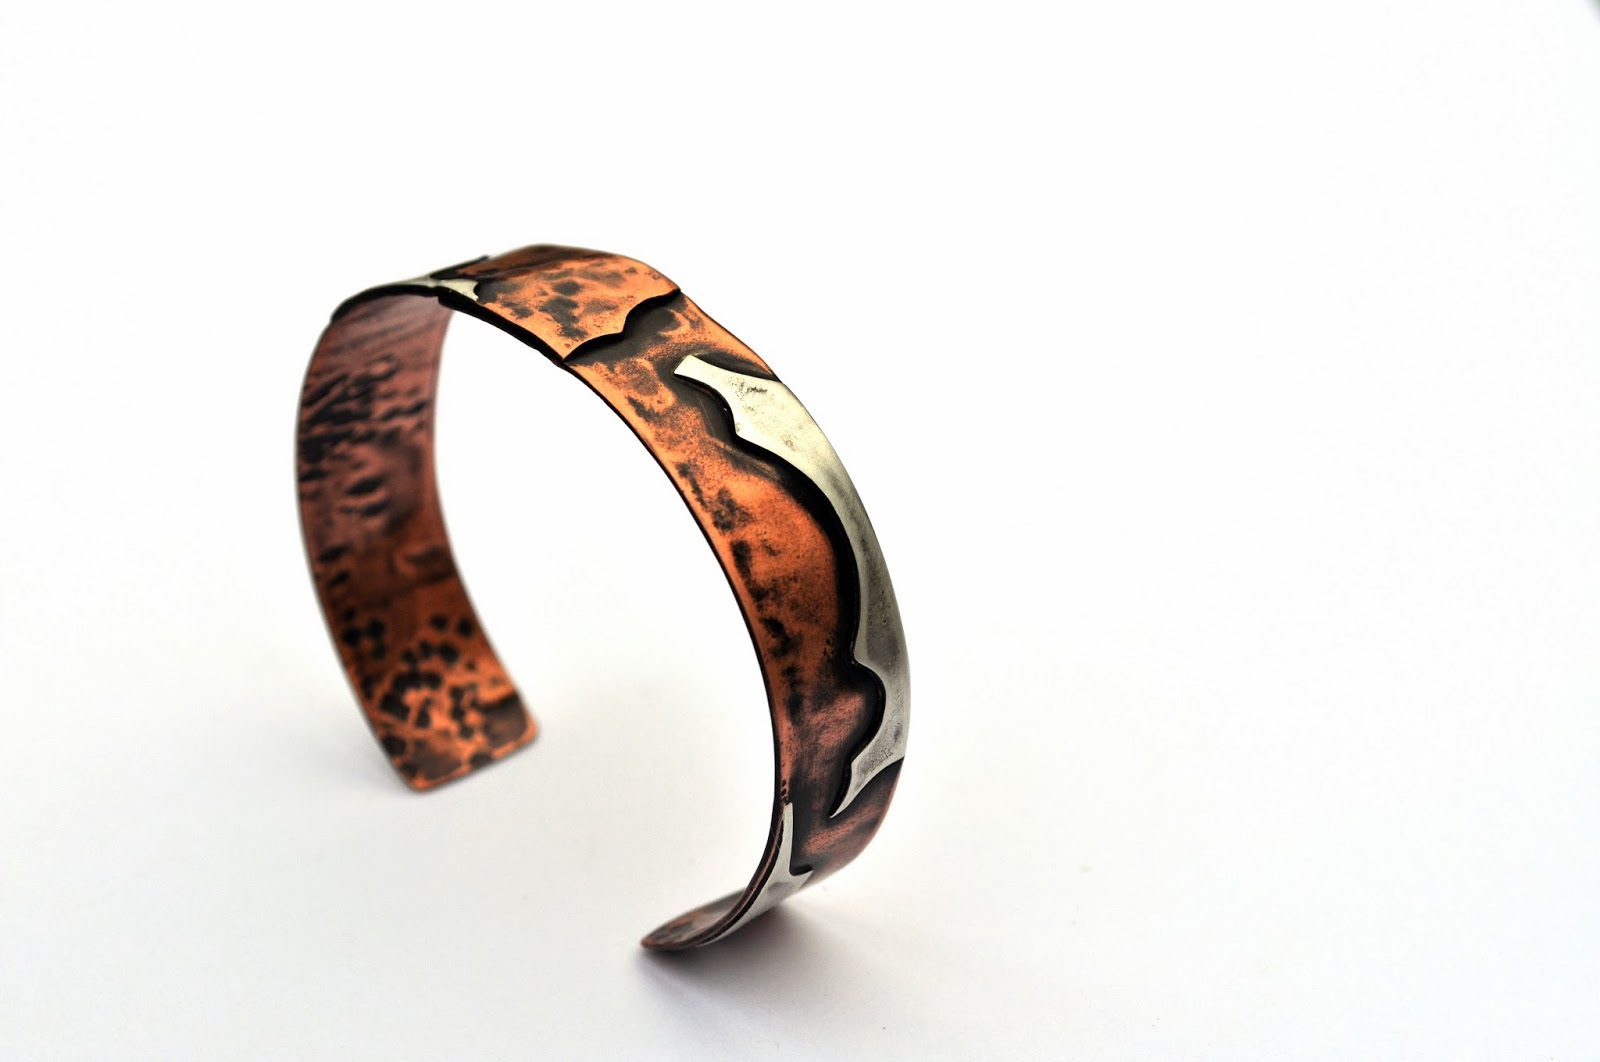 https://www.etsy.com/listing/175558772/copper-and-silver-cuff-bracelet-eco?ref=shop_home_active_1